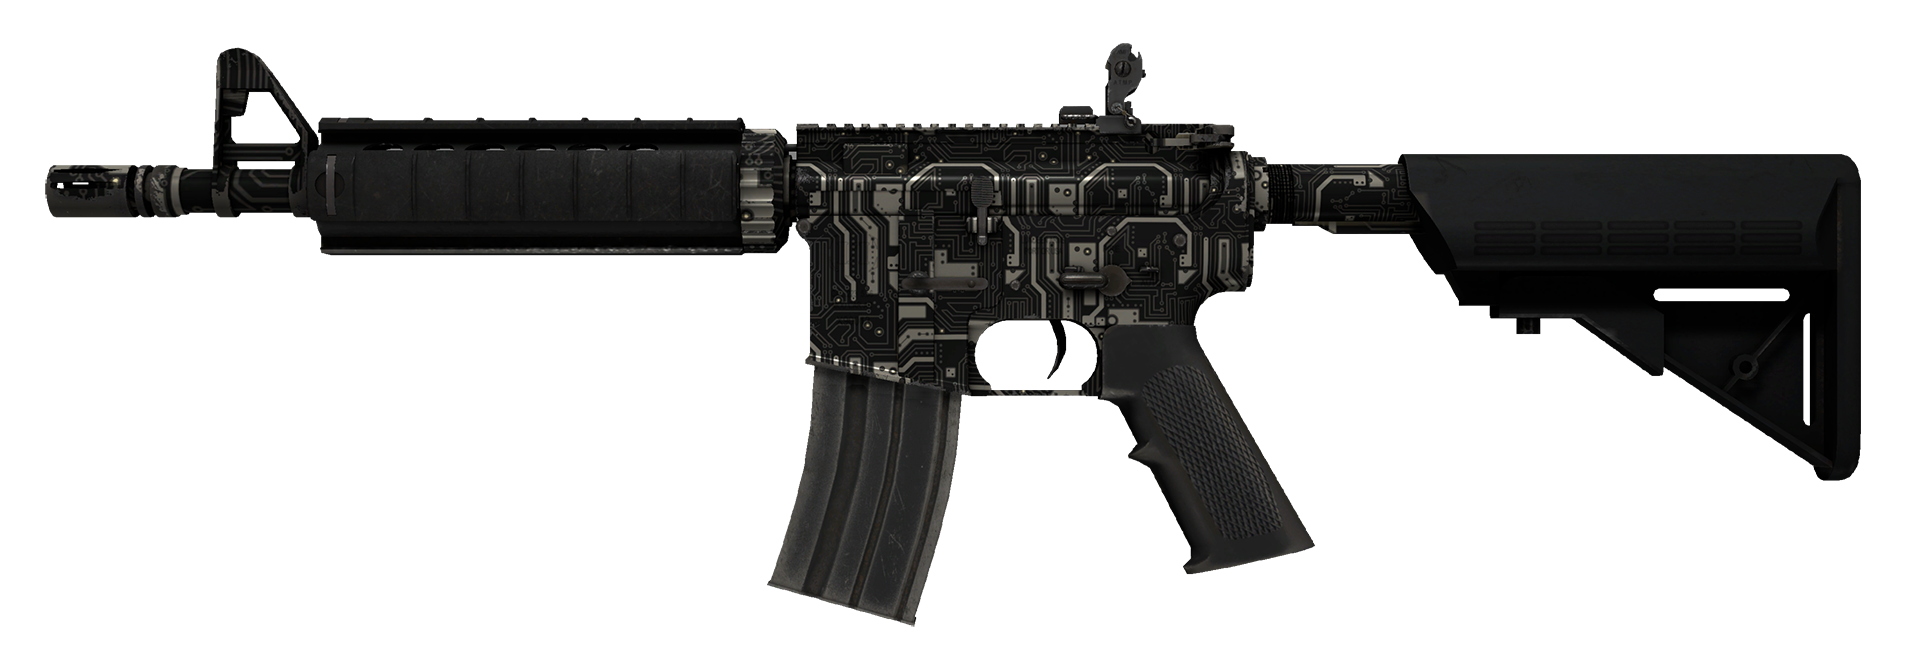 M4A4 Mainframe Large Rendering